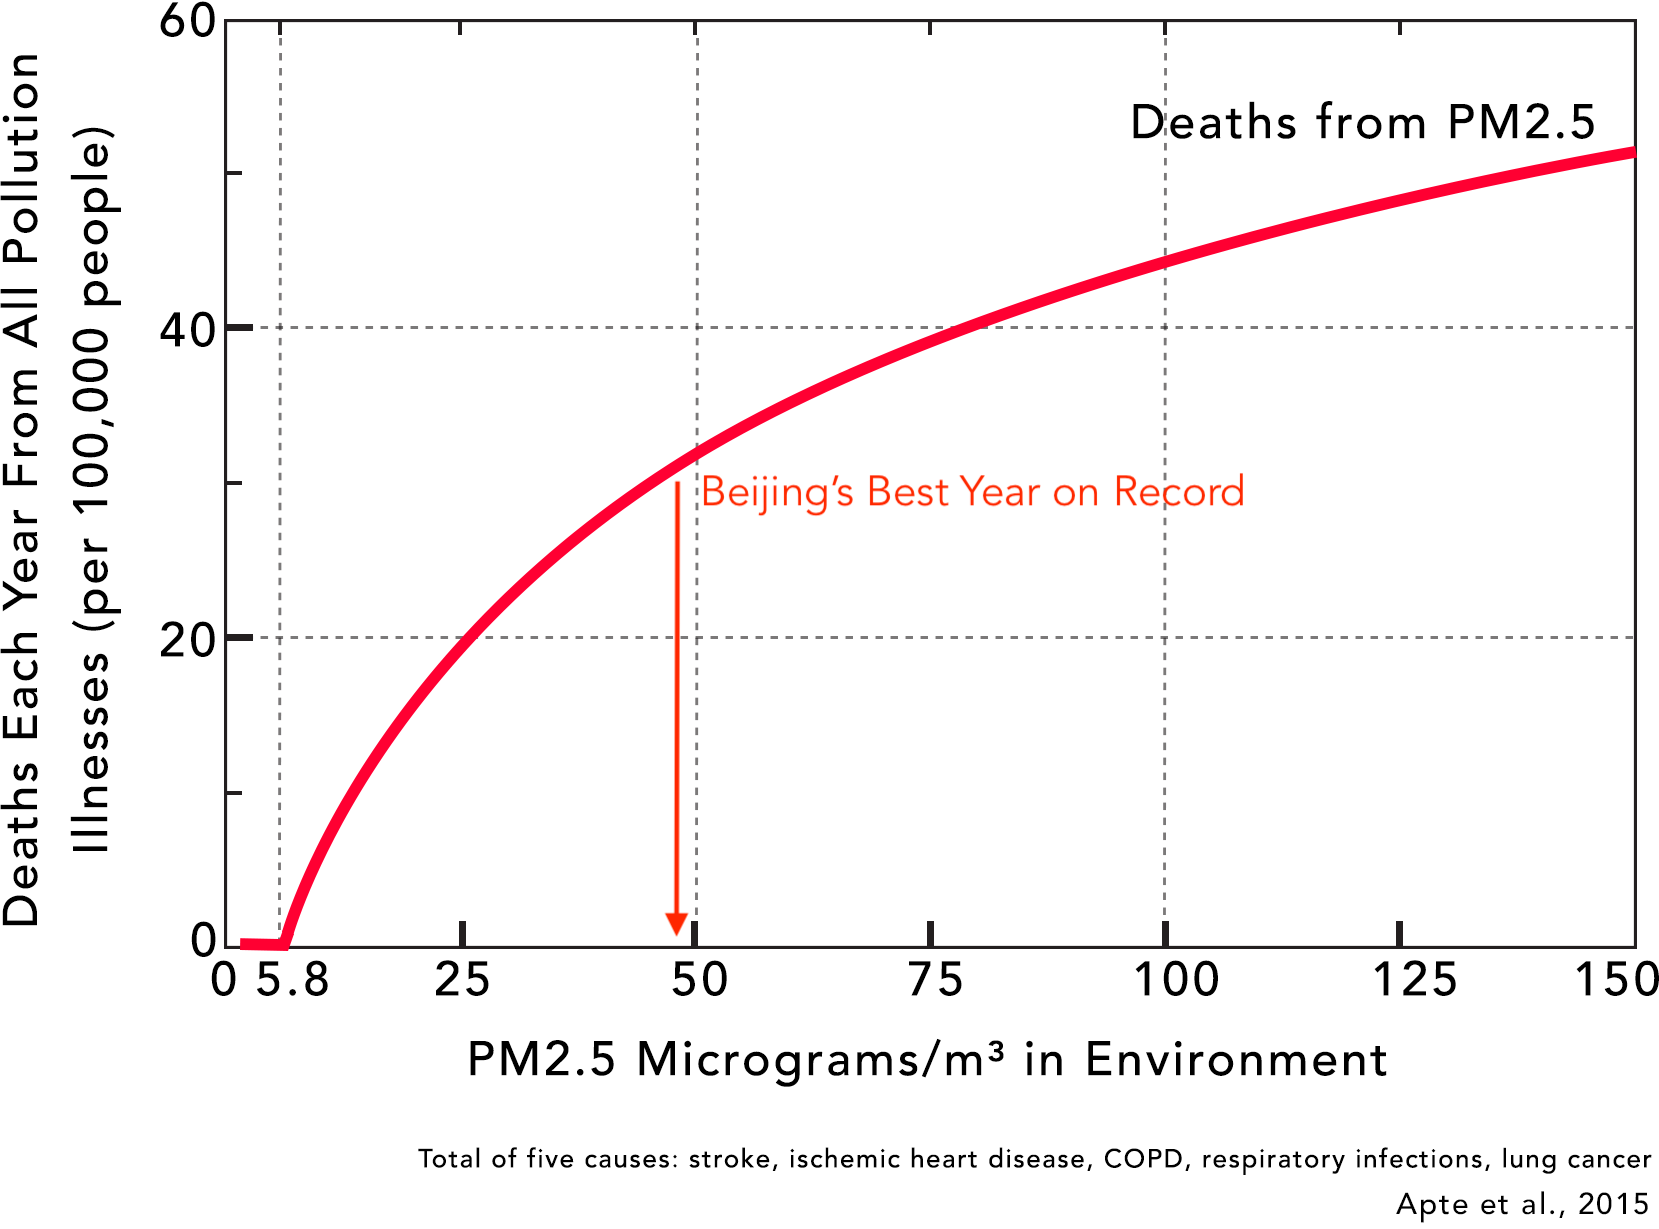 Beijing deaths from air pollution